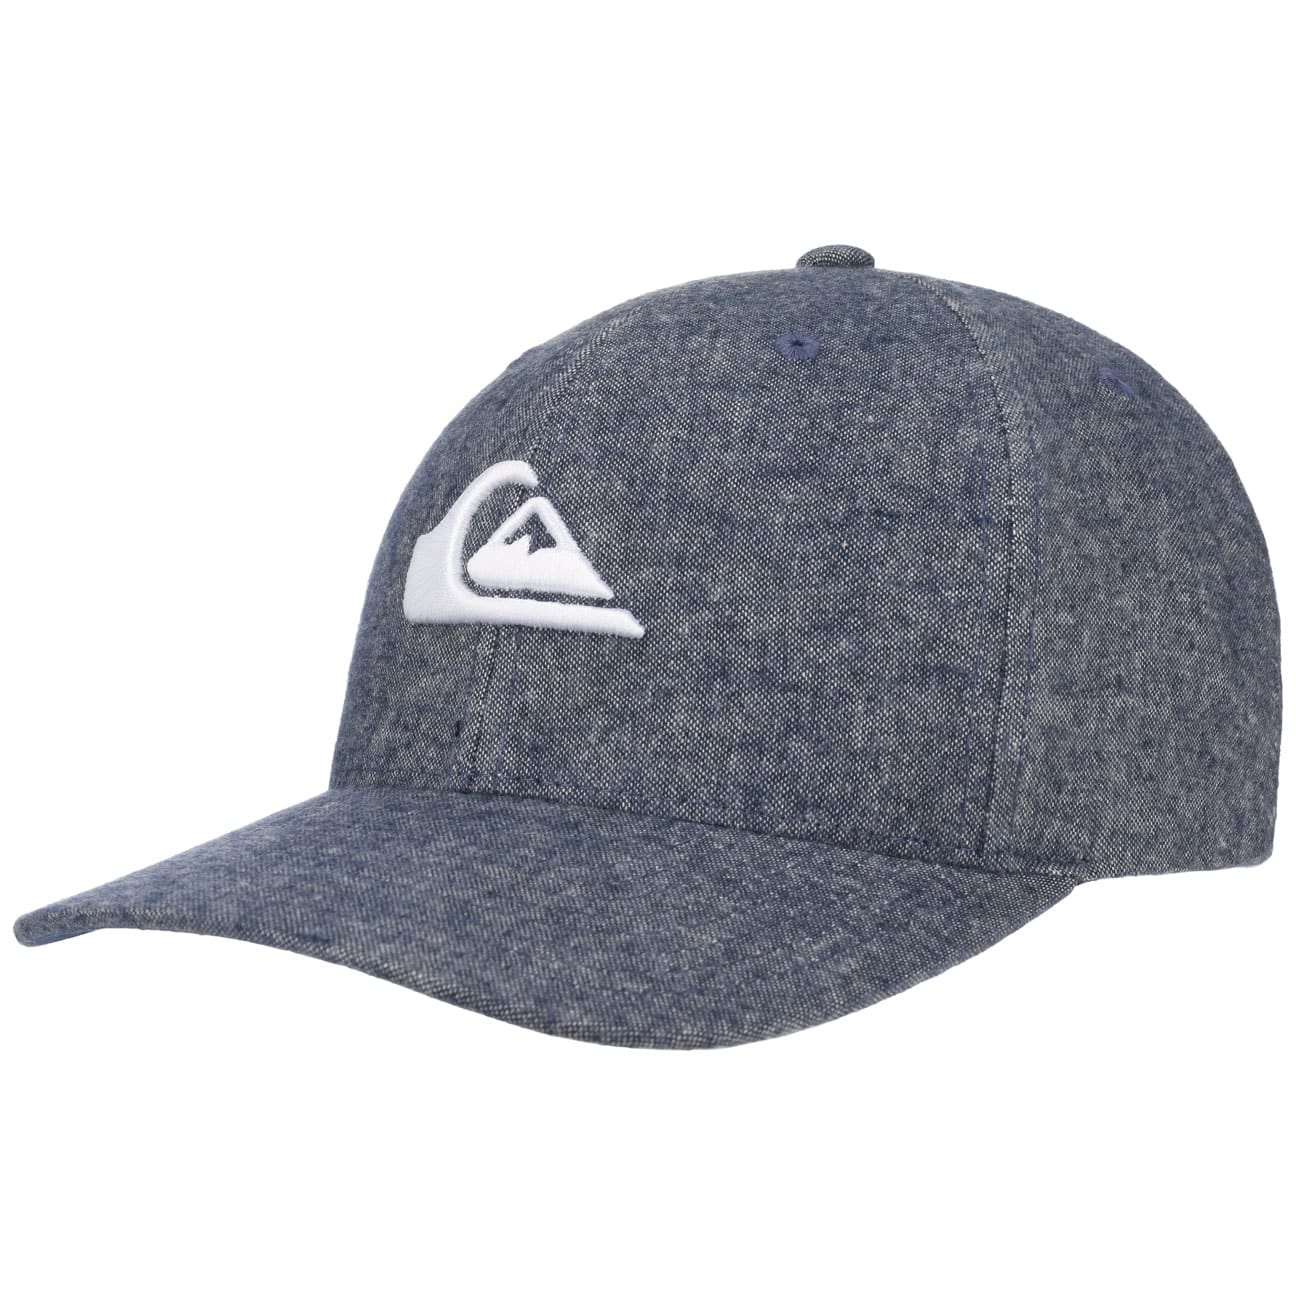 Gorra Decades Plus Snapback by Quiksilver